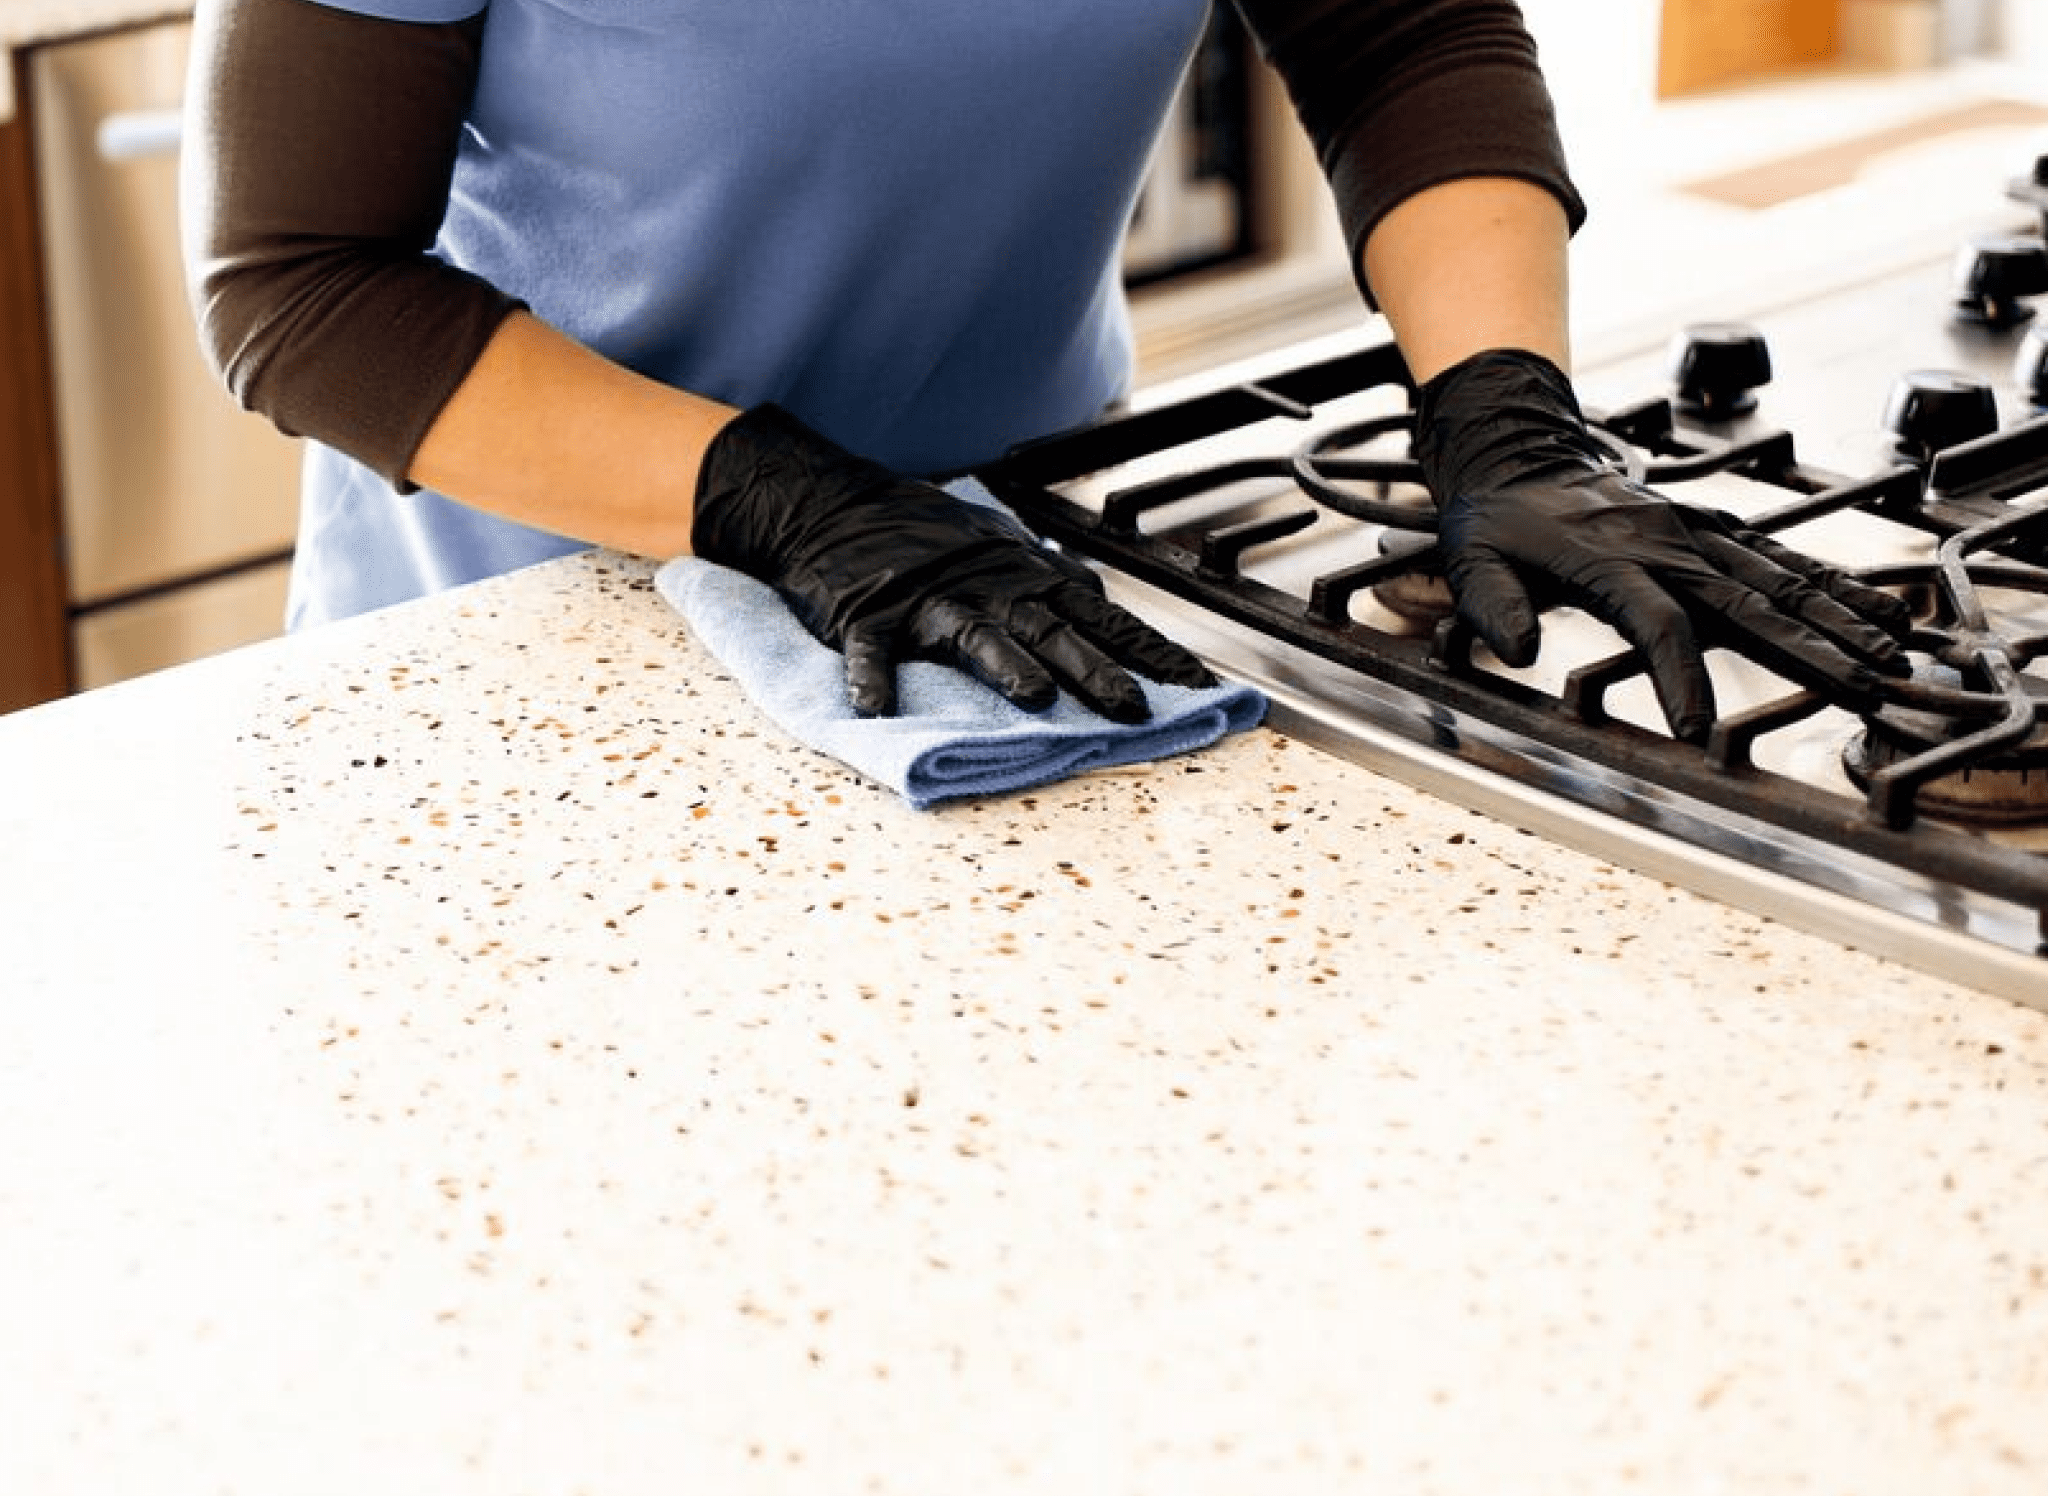 cleaning counter and stove